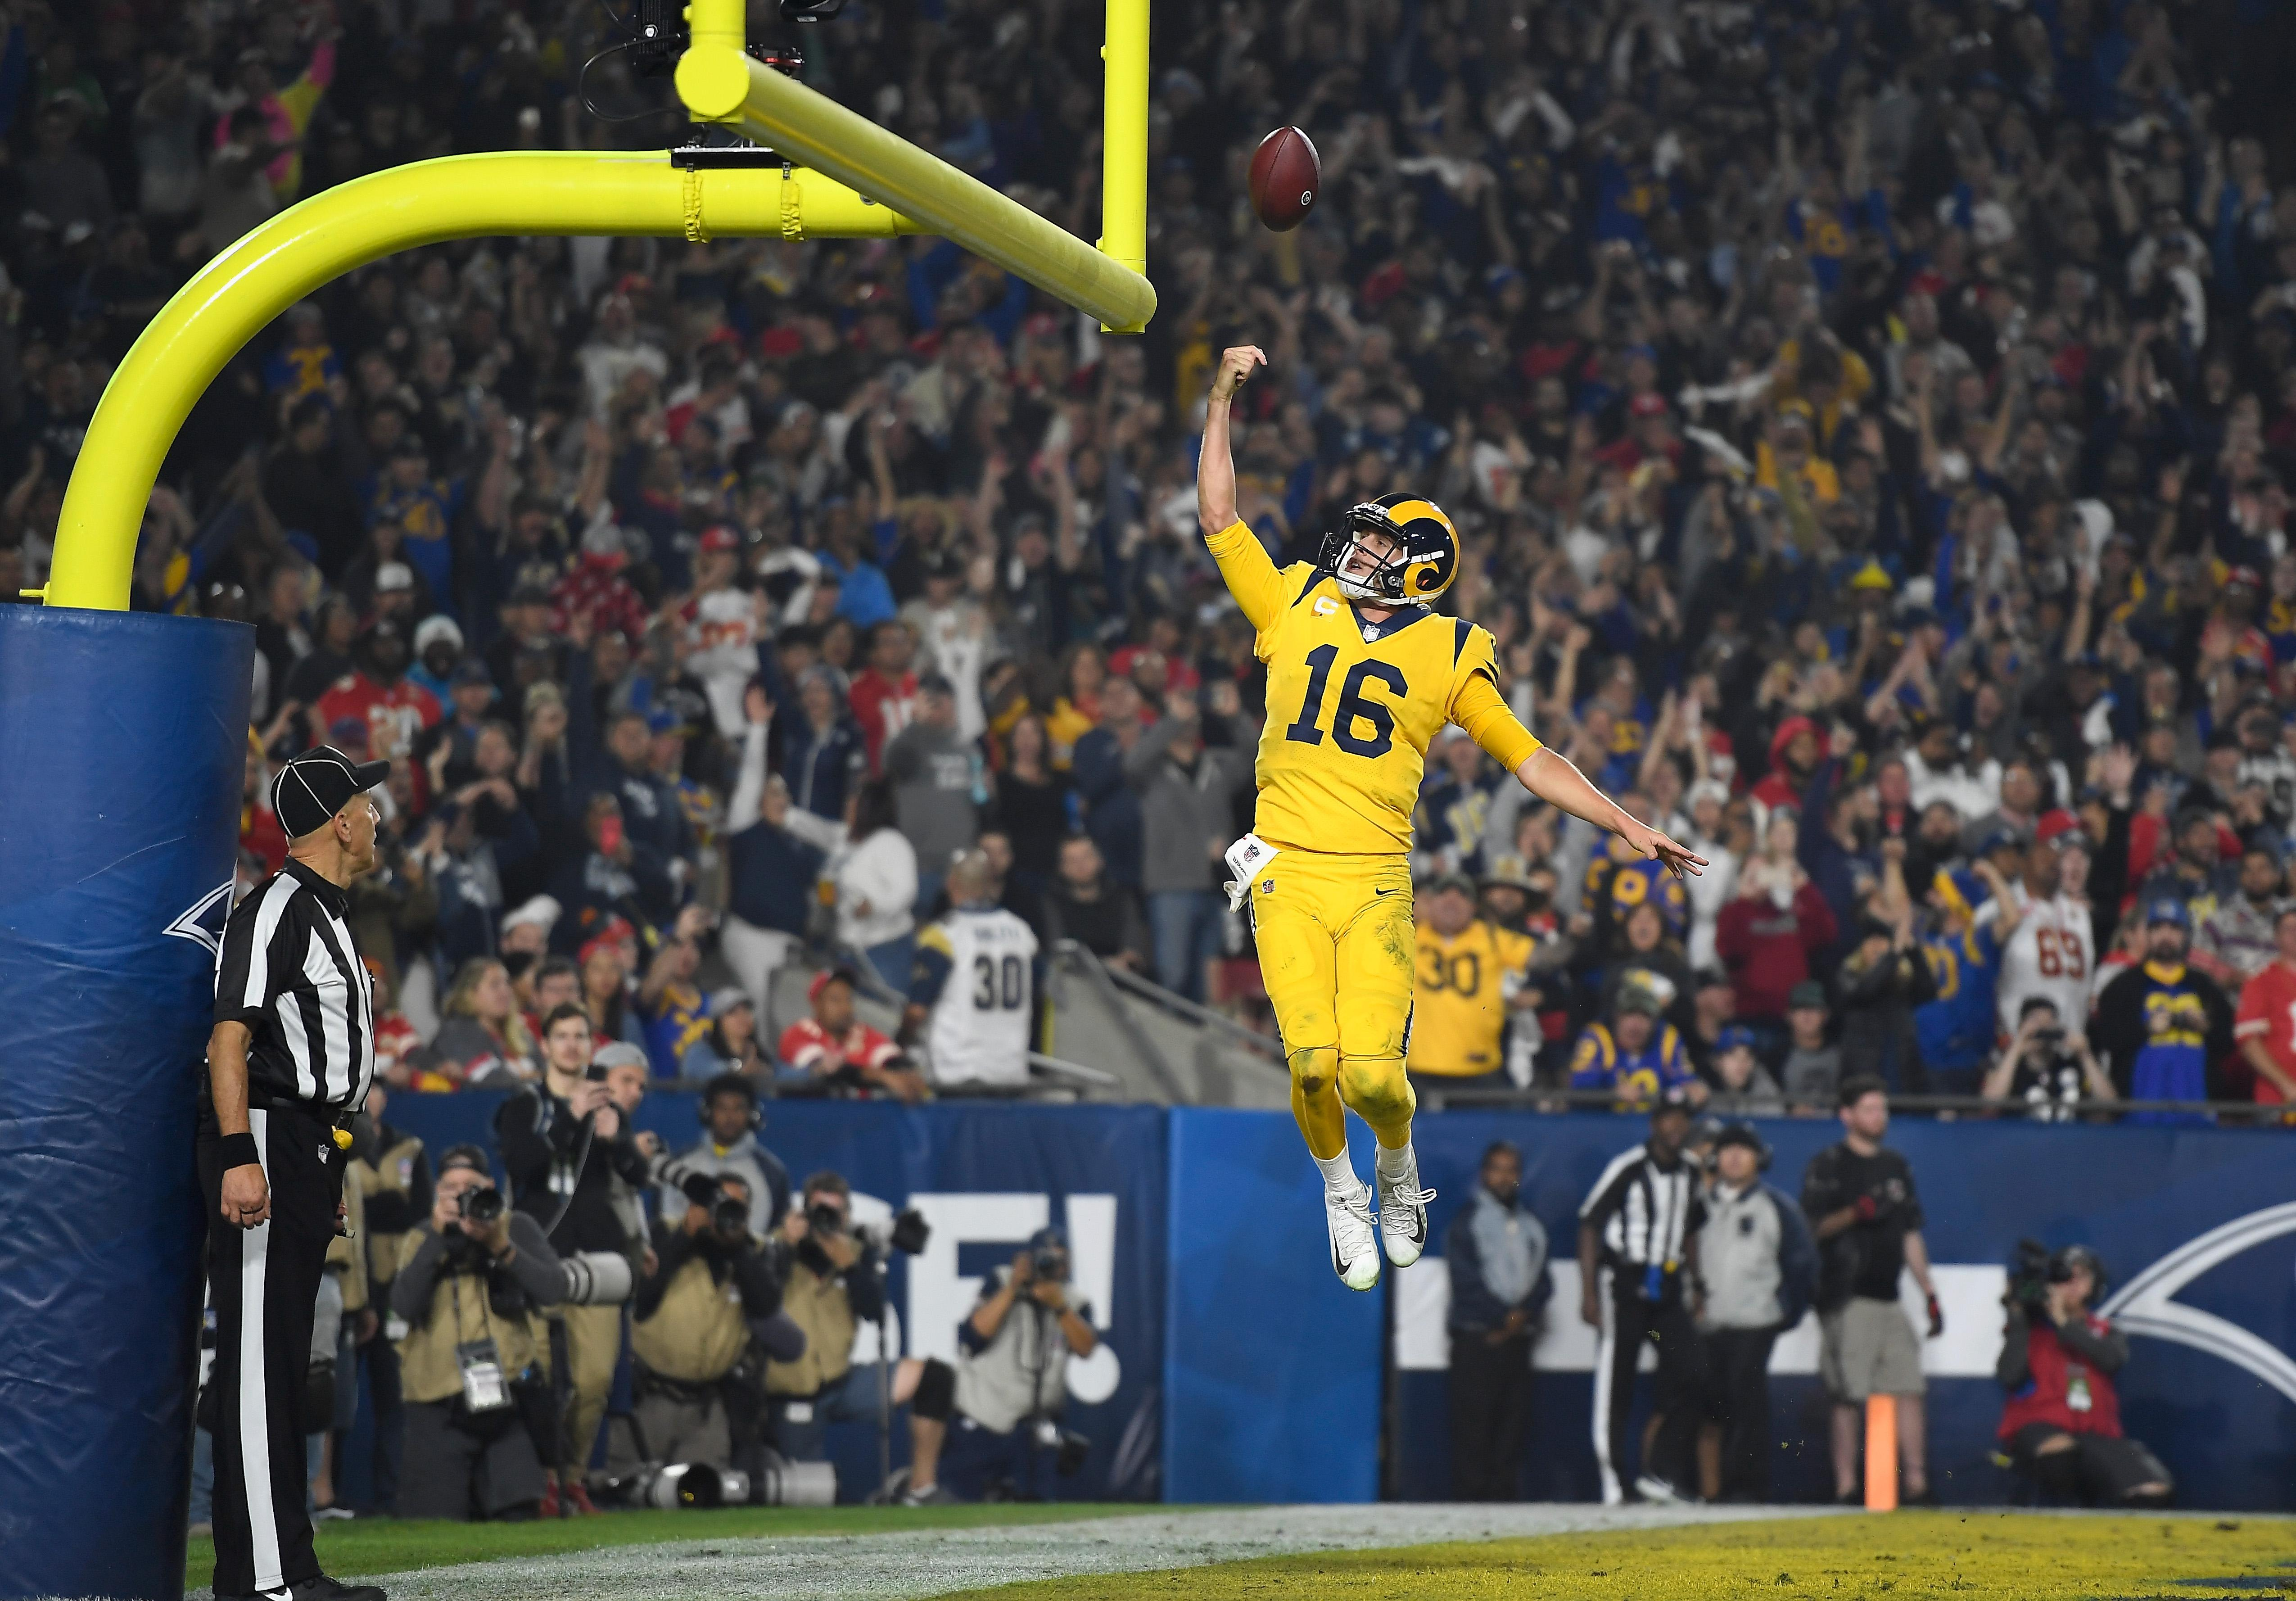 LOS ANGELES, CA - NOVEMBER 19:  Quarterback Jared Goff #16 of the Los Angeles Rams celebrates his touchdown on a seven yard rush by dunking the football between the goal posts during the third quarter of the game against the Kansas City Chiefs at Los Angeles Memorial Coliseum on November 19, 2018 in Los Angeles, California.  (Photo by Kevork Djansezian/Getty Images)